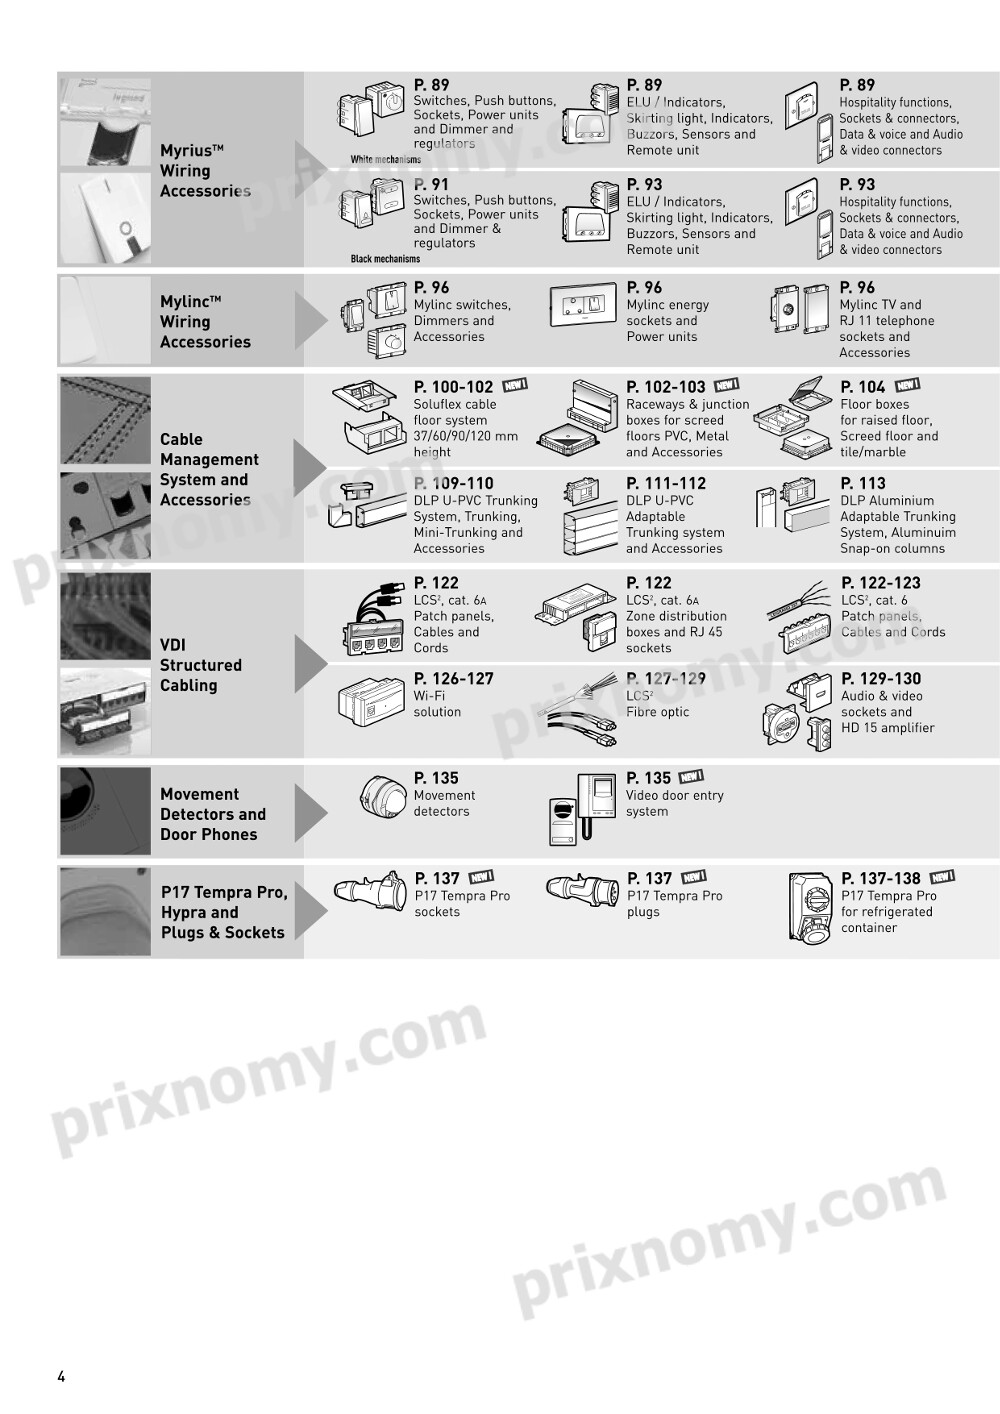 prixnomy legrand electrical price list 2016 4 prixnomy rh prixnomy com electrical house wiring accessories list Electrical Panel Wiring